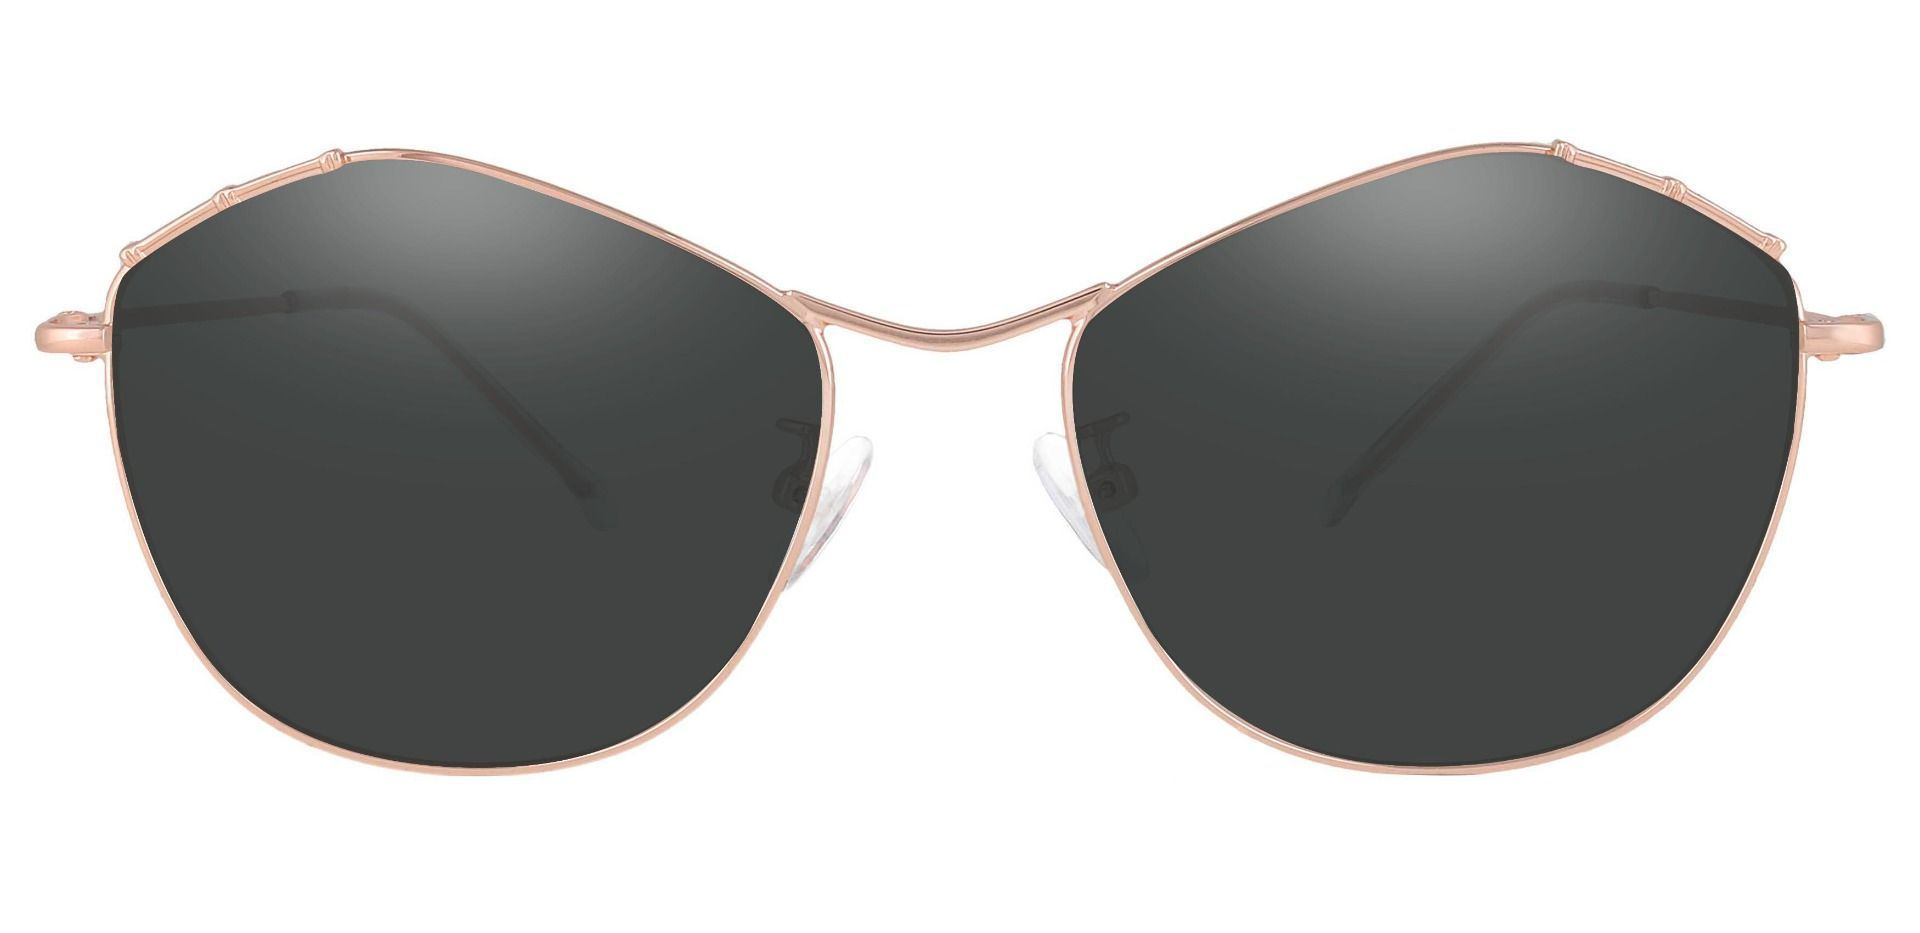 Bamboo Geometric Lined Bifocal Sunglasses - Rose Gold Frame With Gray Lenses